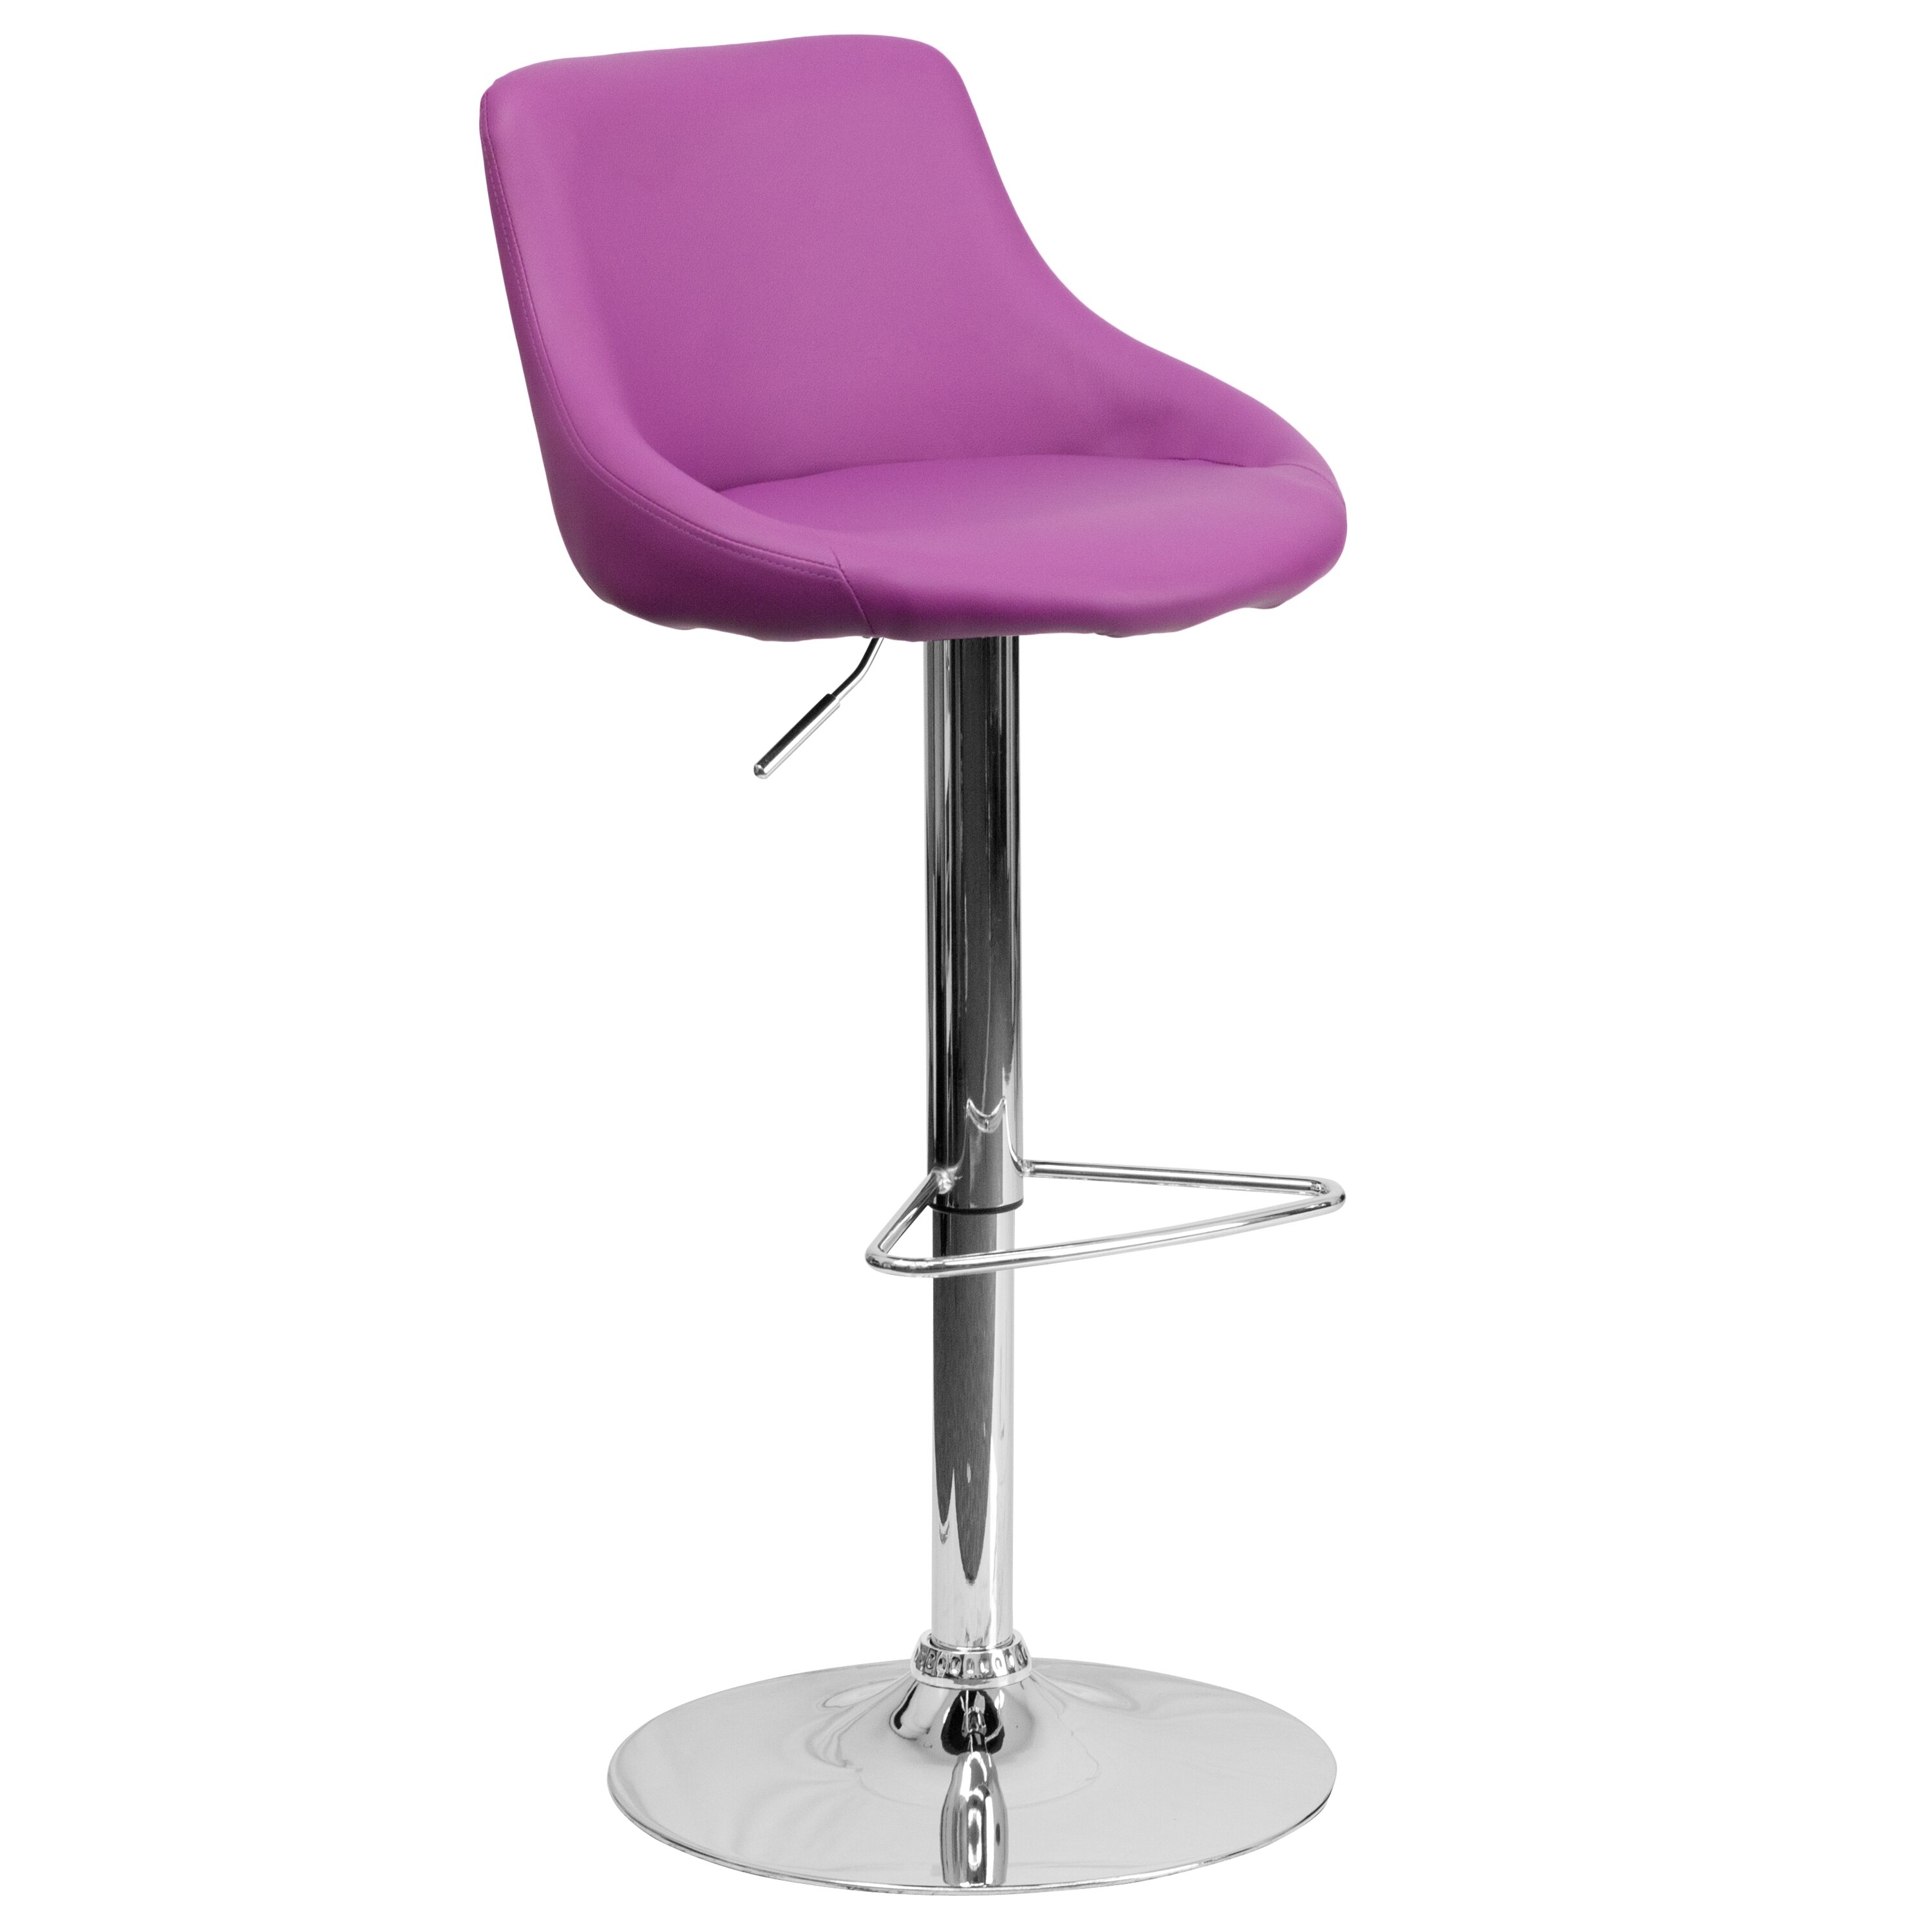 Furniture bar furniture adjustable height barstools flash